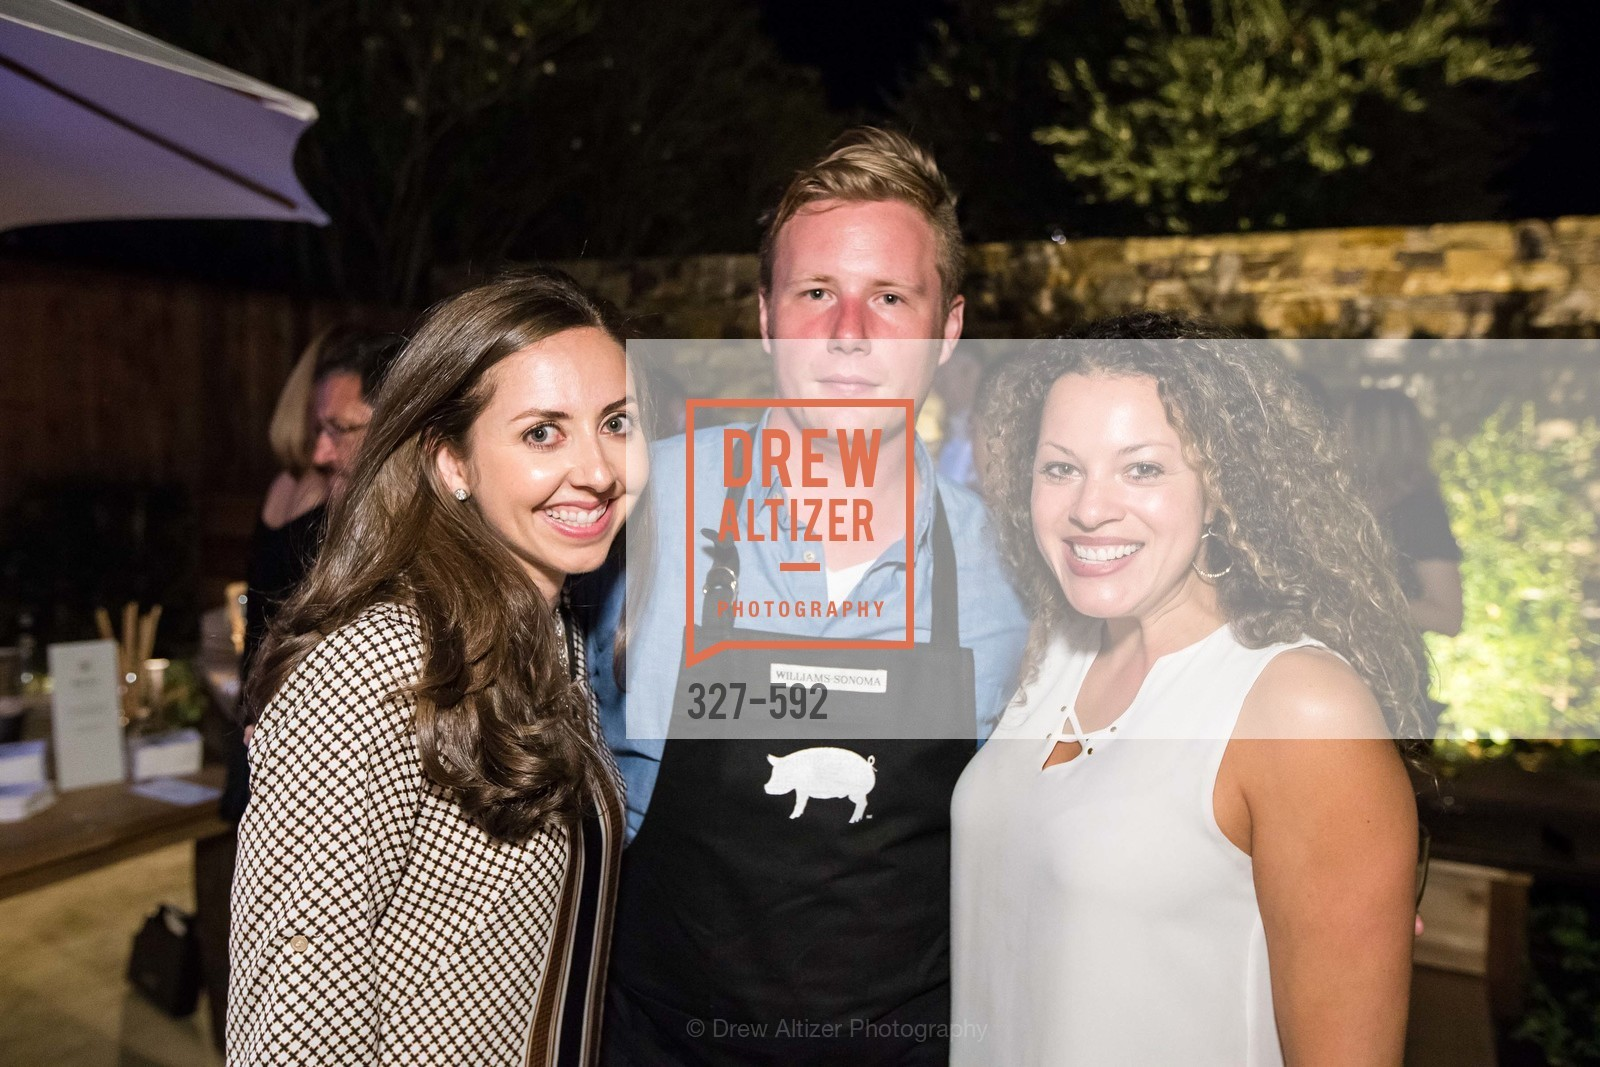 Lauren Tarzia, Thomas McNaughton, Vanessa Carlson, WILLIAMS-SONOMA Cochon BBQ Celebration, US, October 3rd, 2014,Drew Altizer, Drew Altizer Photography, full-service agency, private events, San Francisco photographer, photographer california